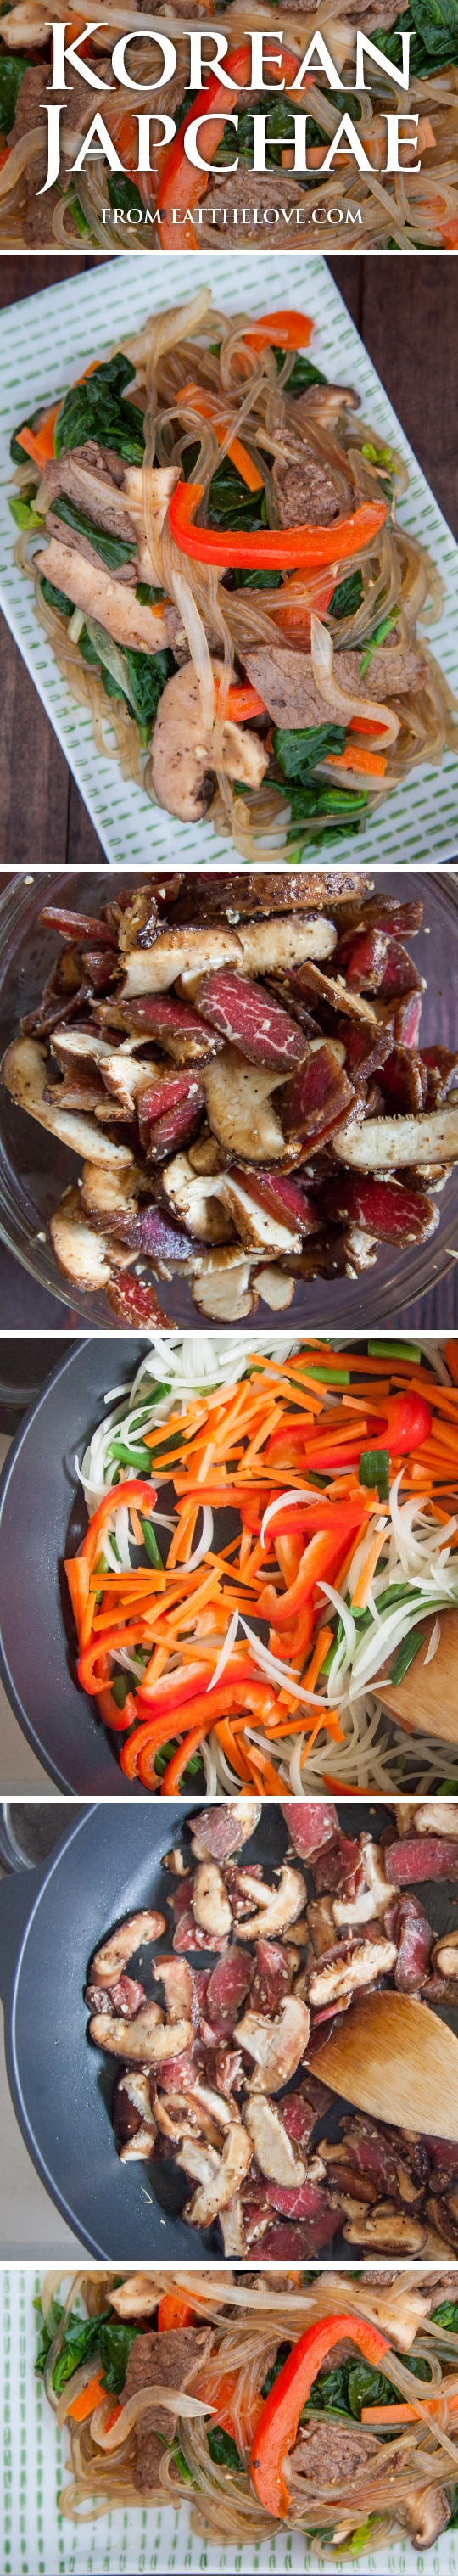 Korean Japchae Recipe with step-by-step photos and instructions by Irvin Lin of Eat the Love.